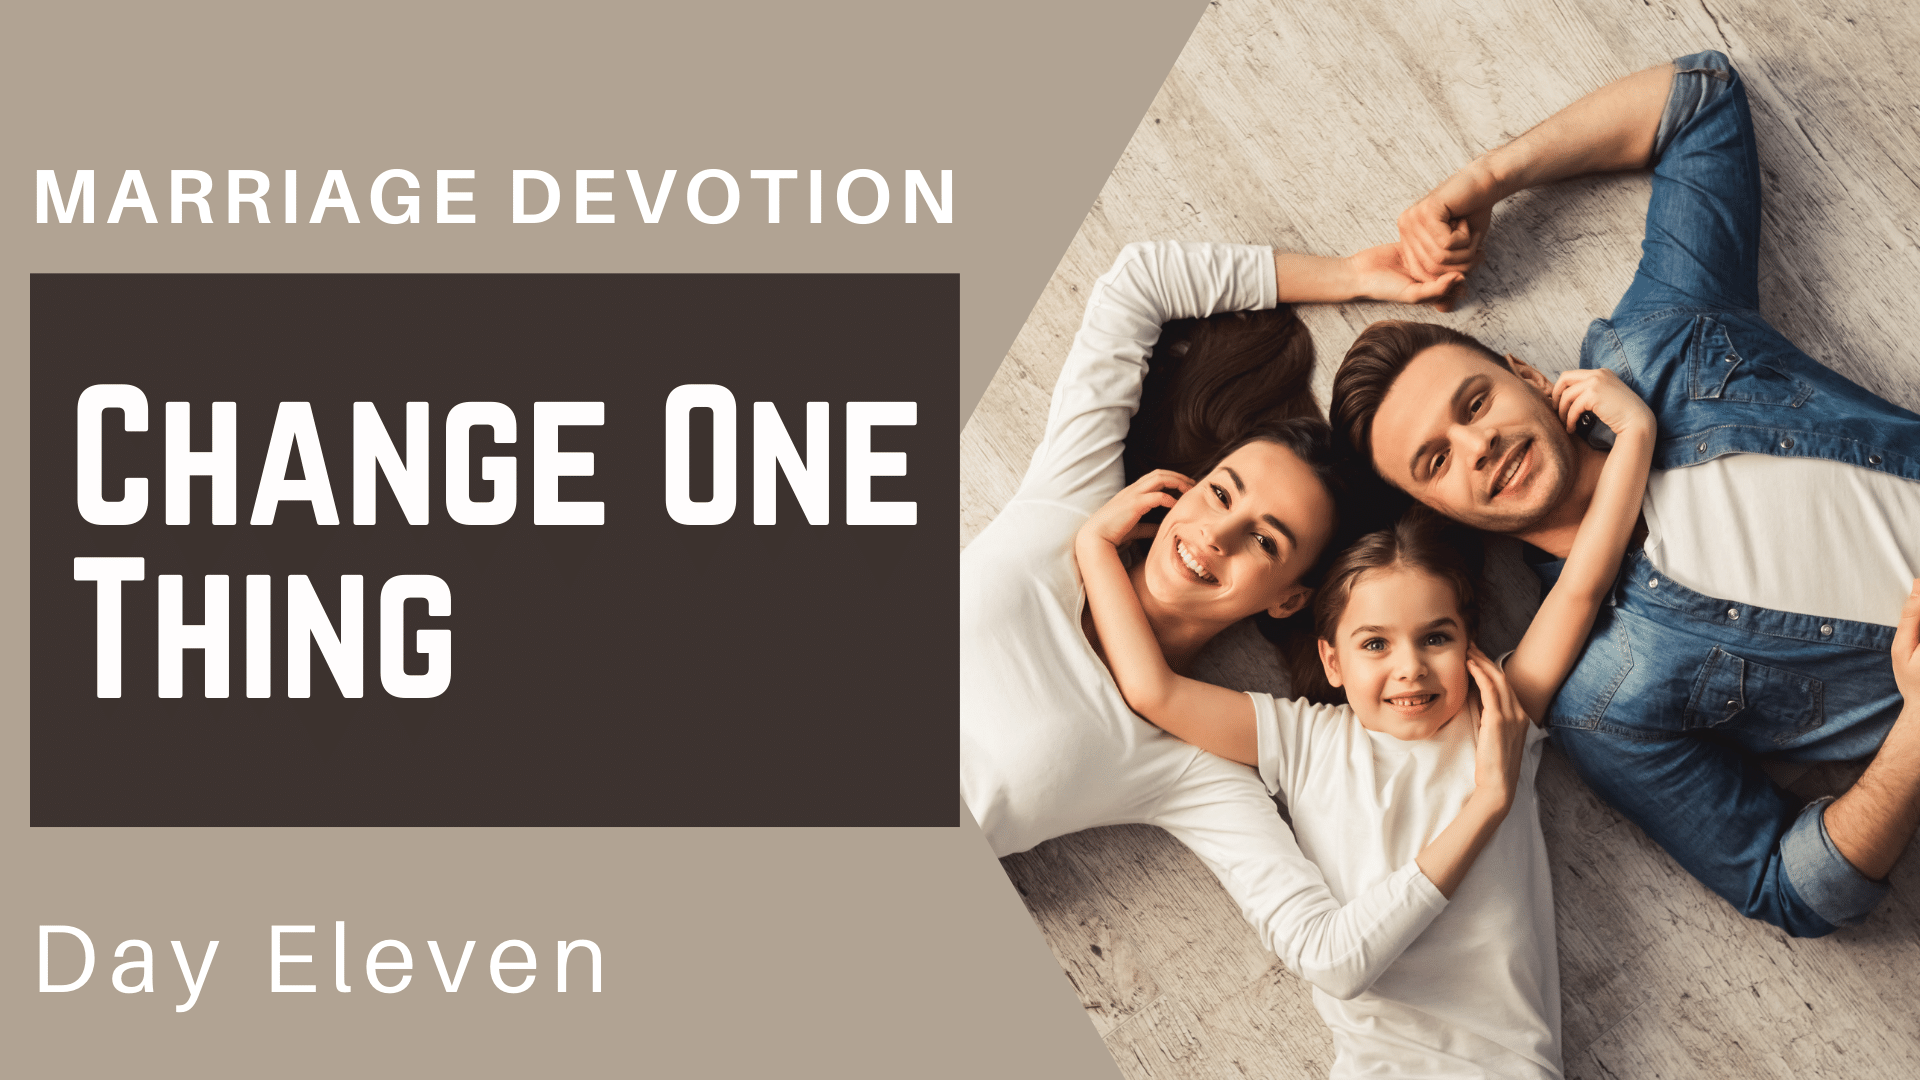 Marriage Devotion Day 11 – Change One Thing